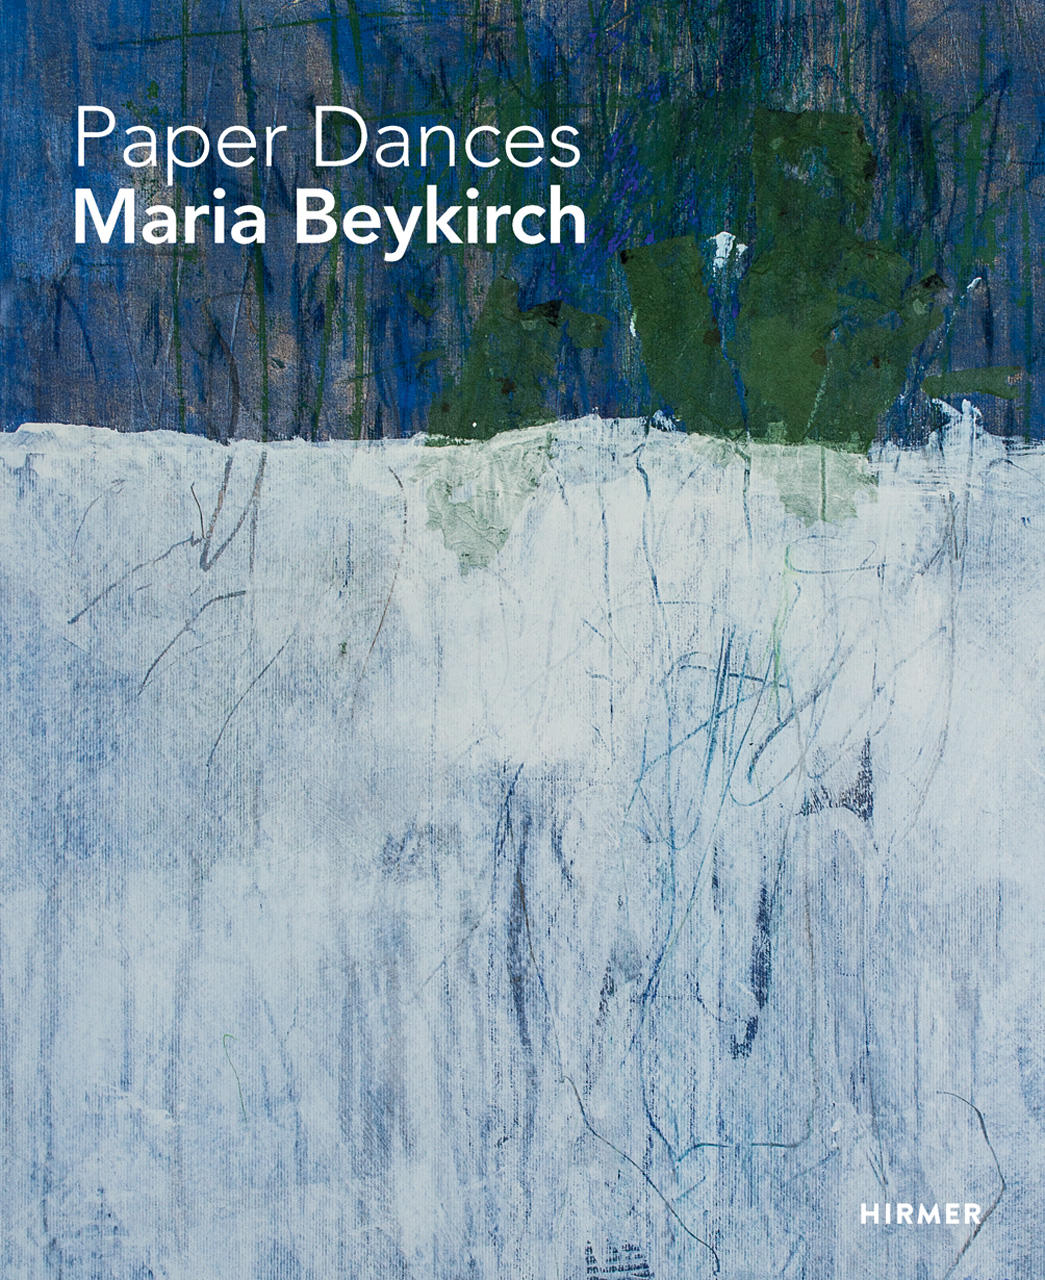 Maria Beykirch: Paper Dances